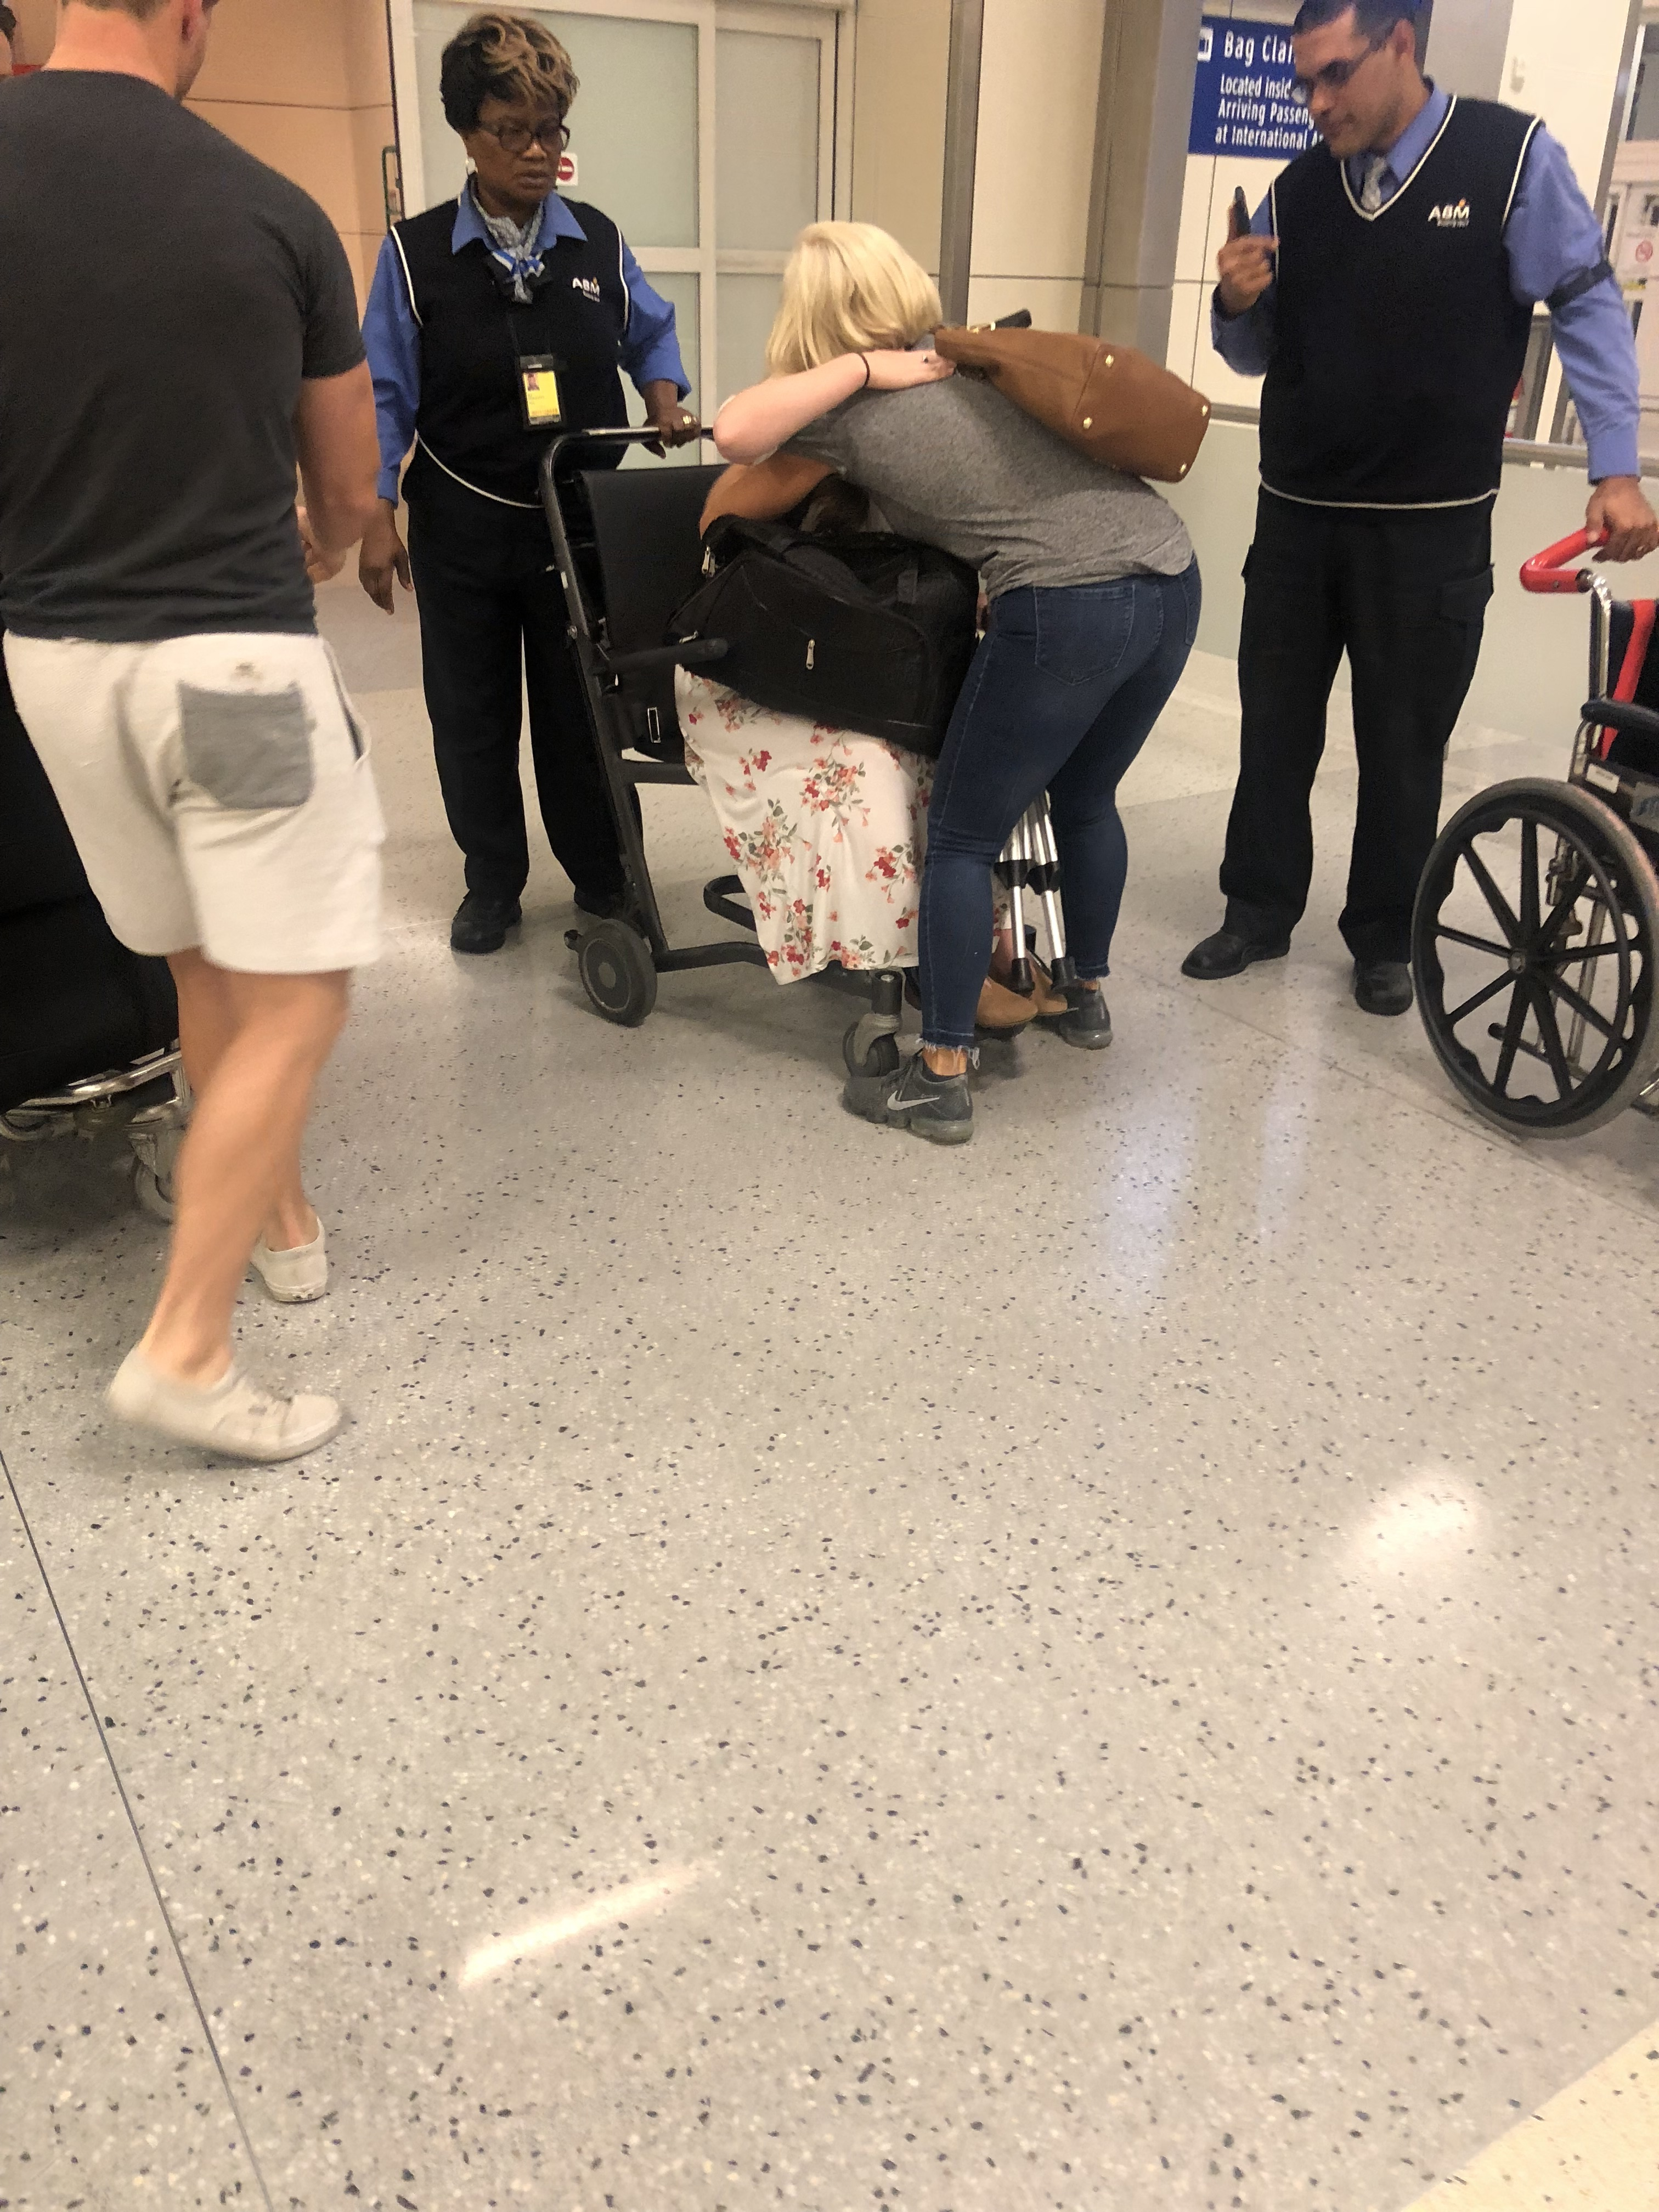 Monique McDown arrives at the airport in a wheelchair following an accident on her mission in Curitiba, Brazil, which left her paralyzed.